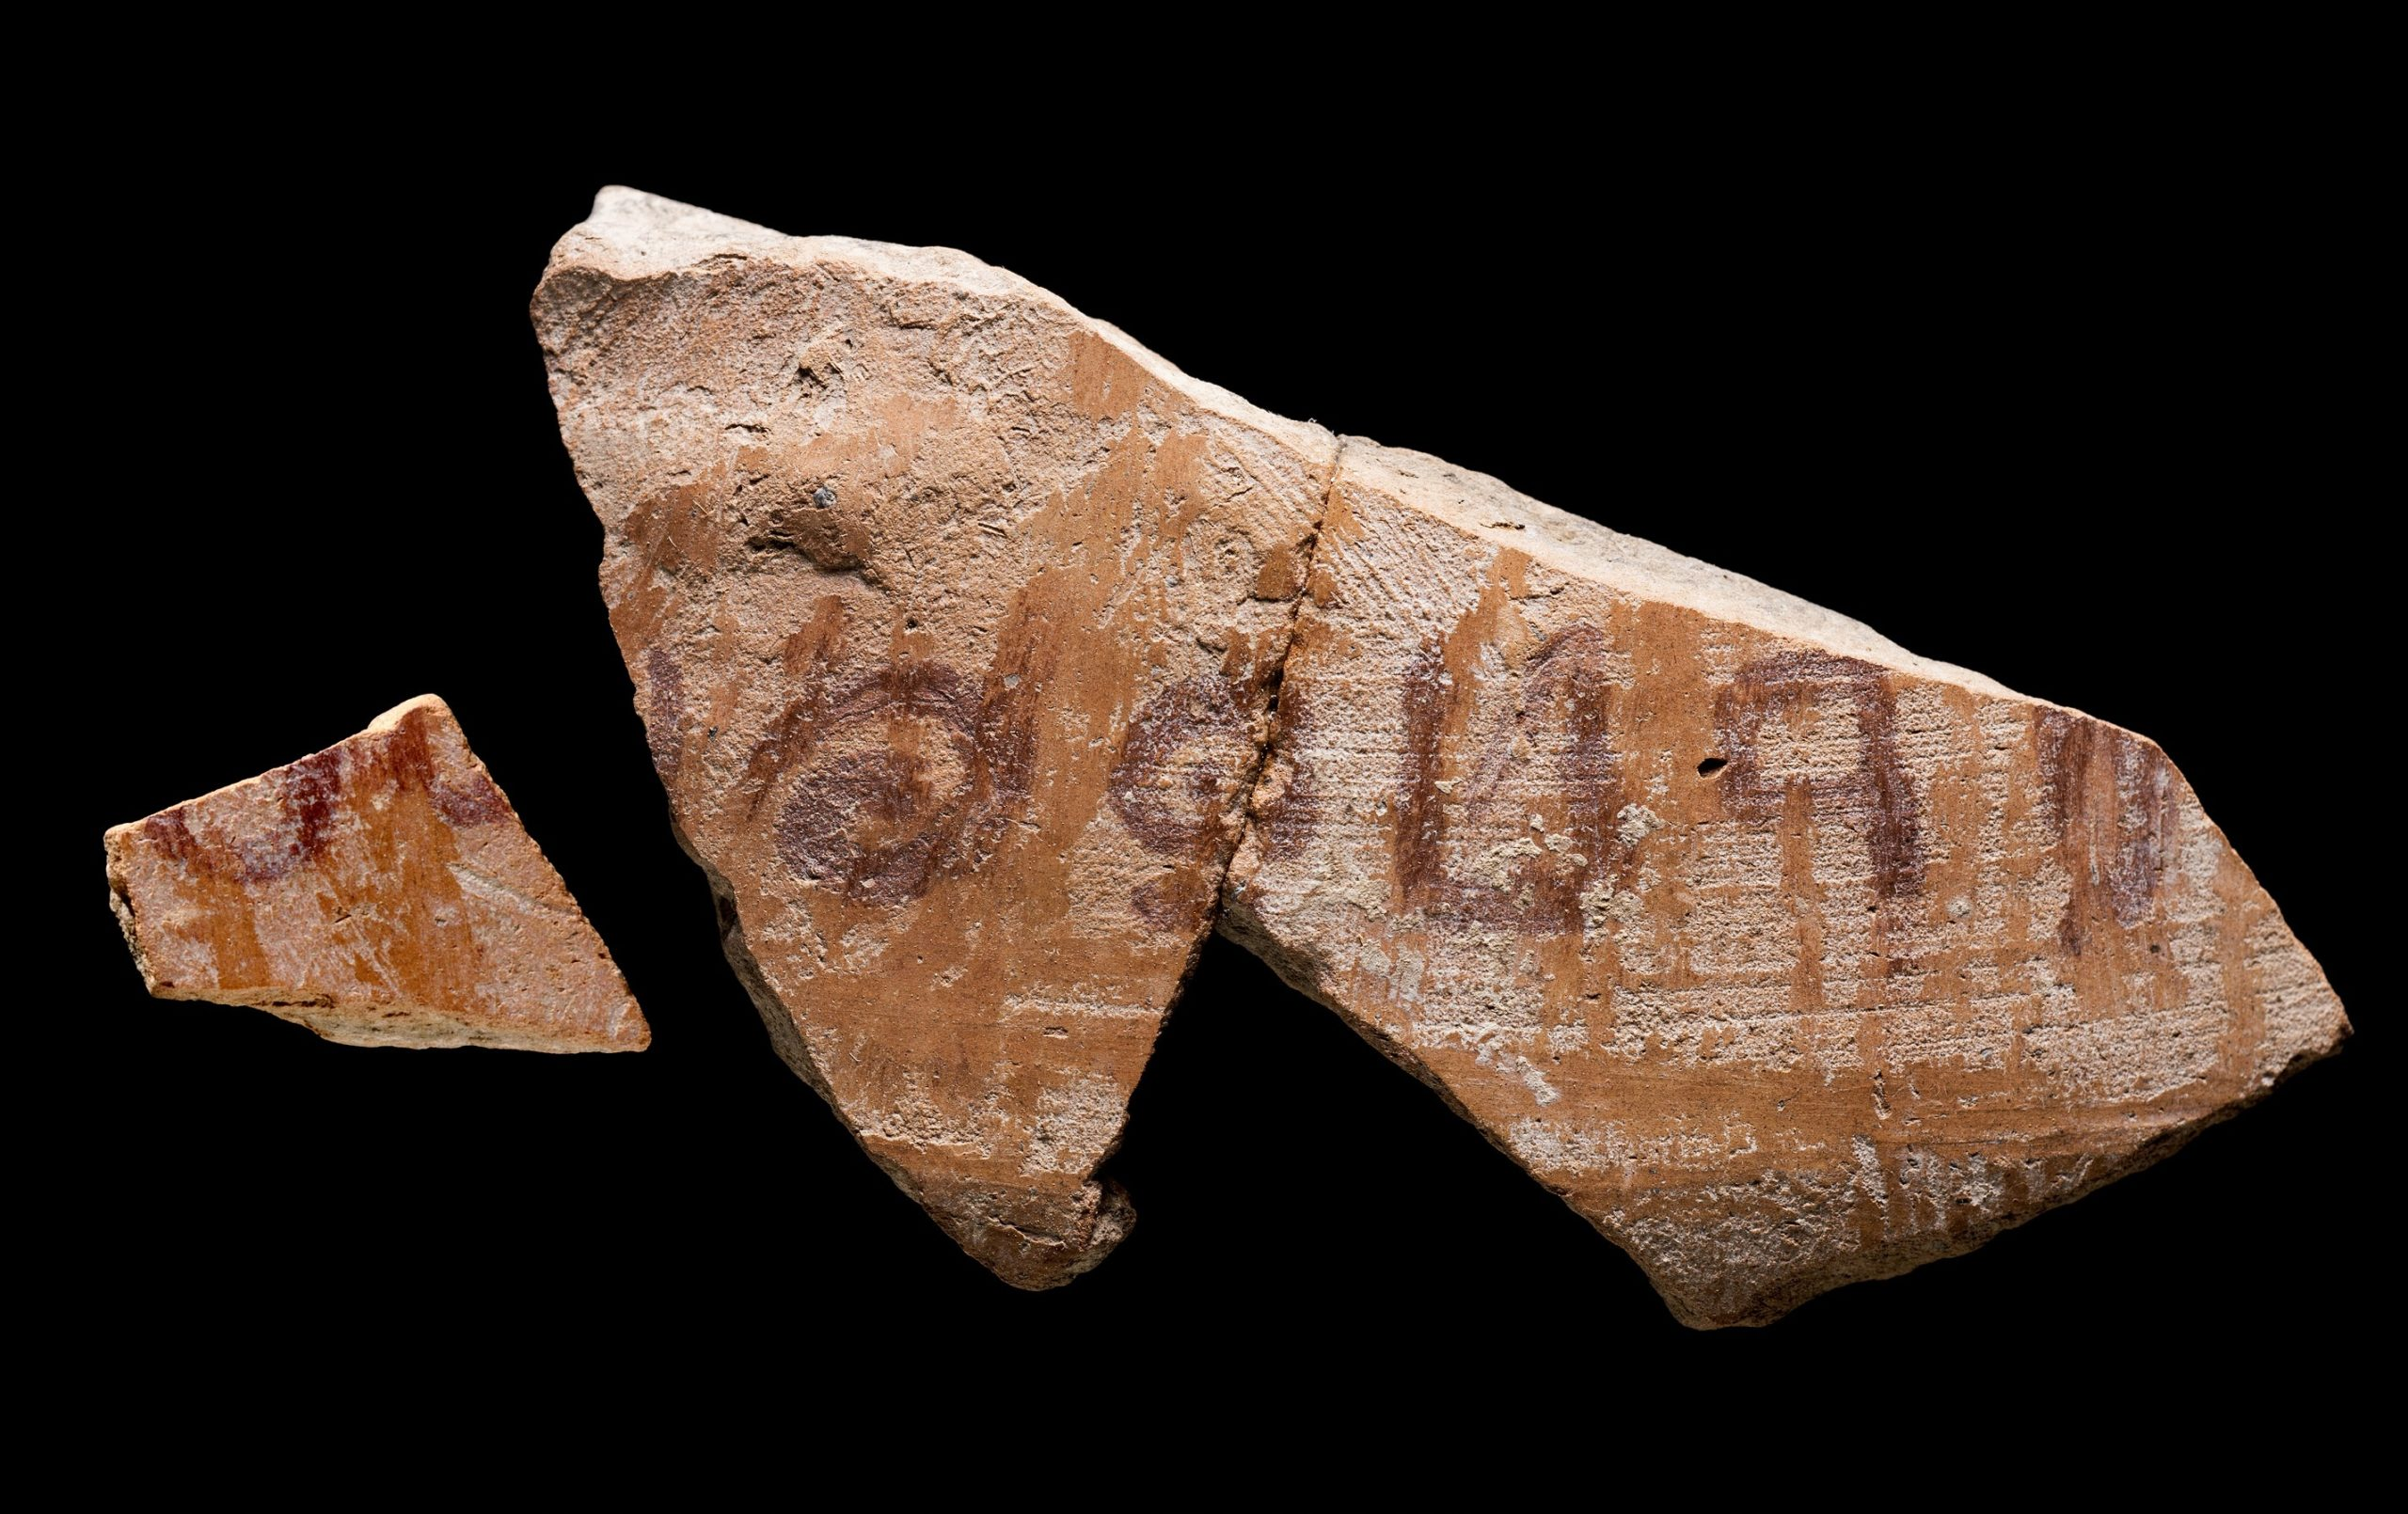 Name of Gideon Discovered in Israel